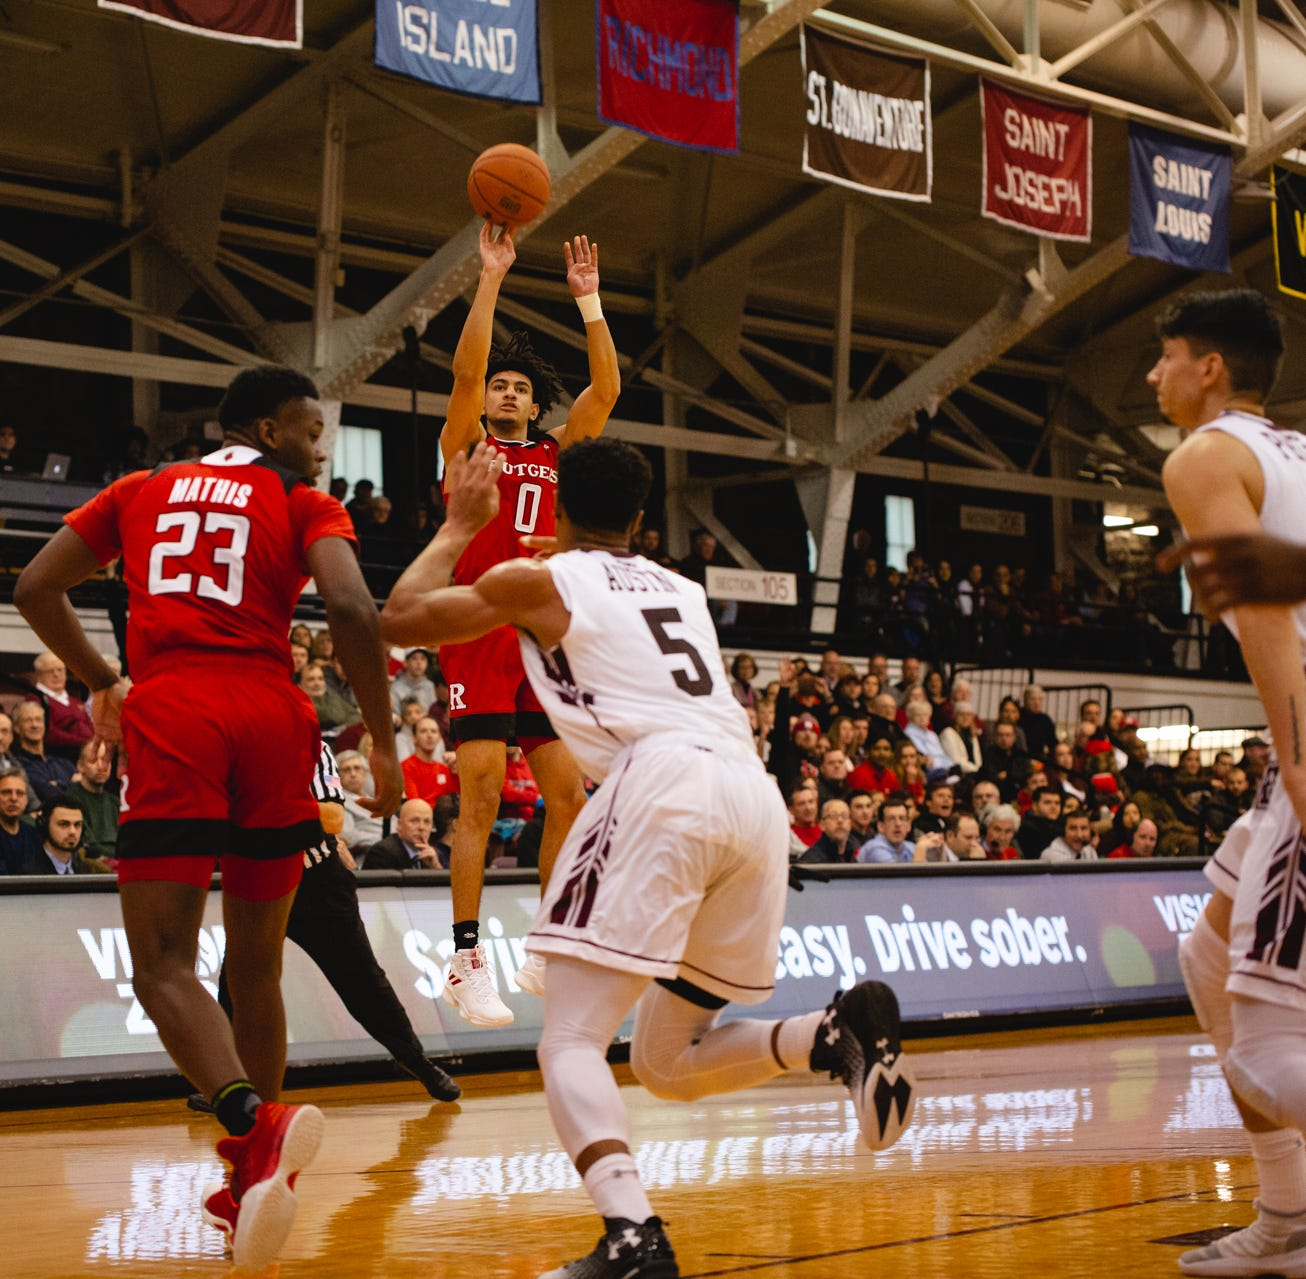 Rutgers hoops out-toughed in bad loss at Fordham